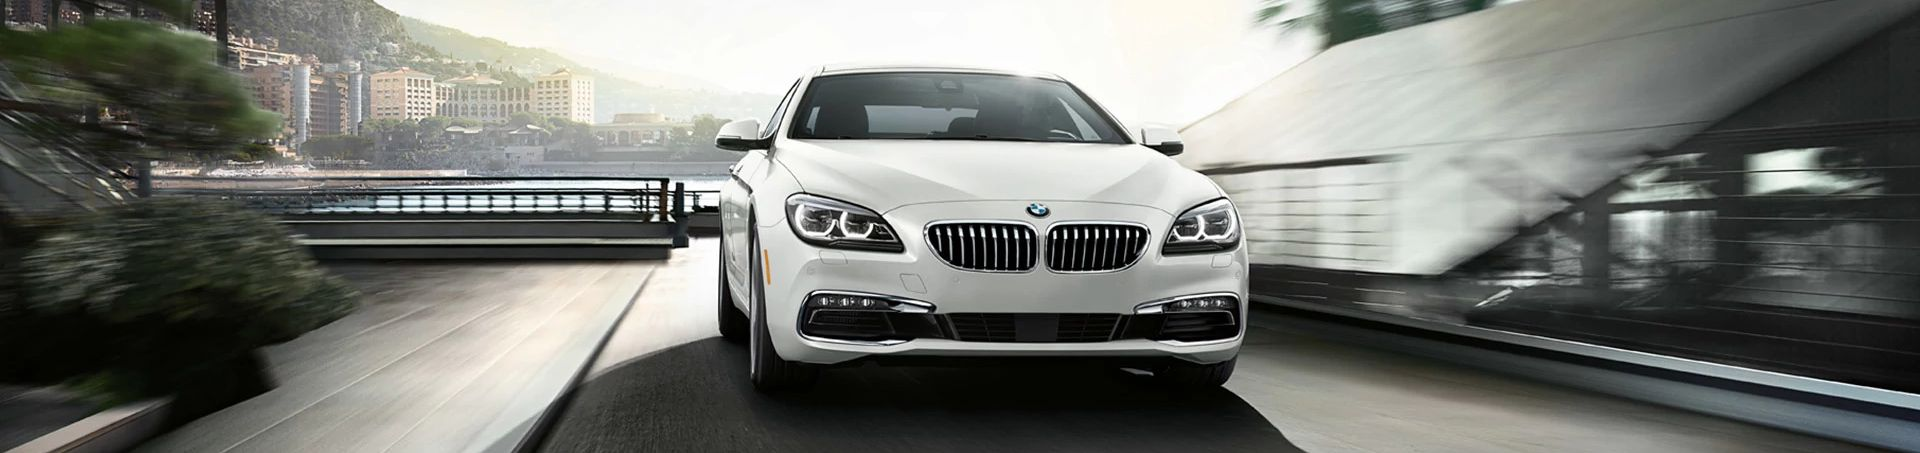 2018 BMW 6 Series for Sale near Chicago, IL